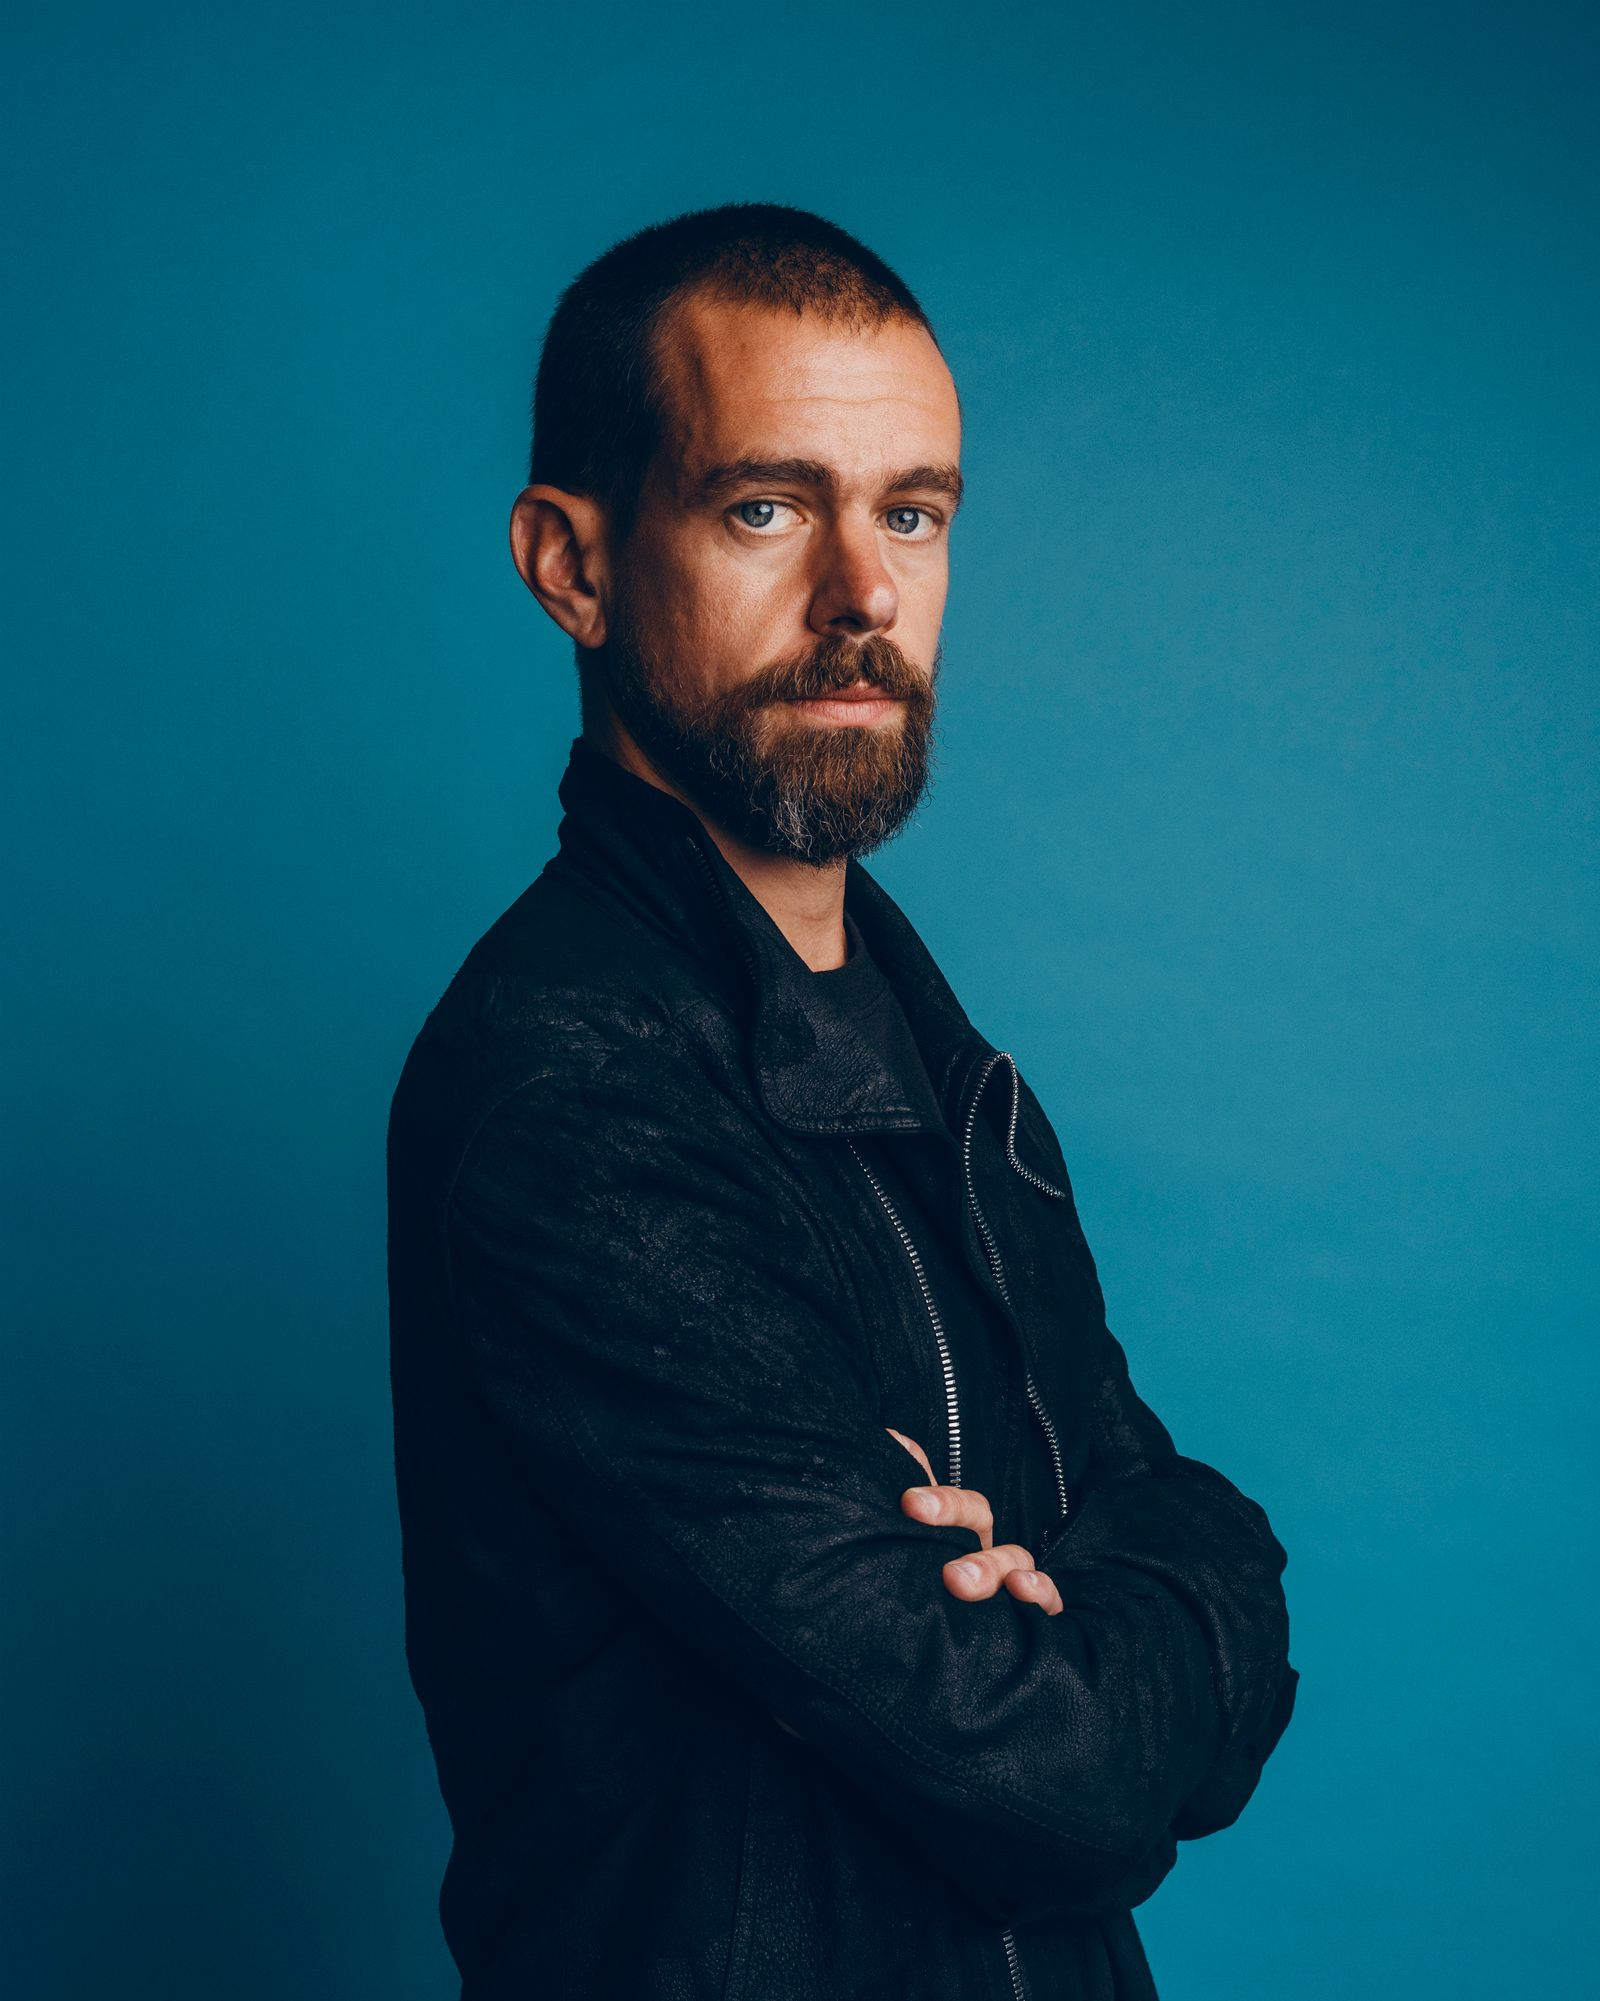 Portrait series of Jack Dorsey